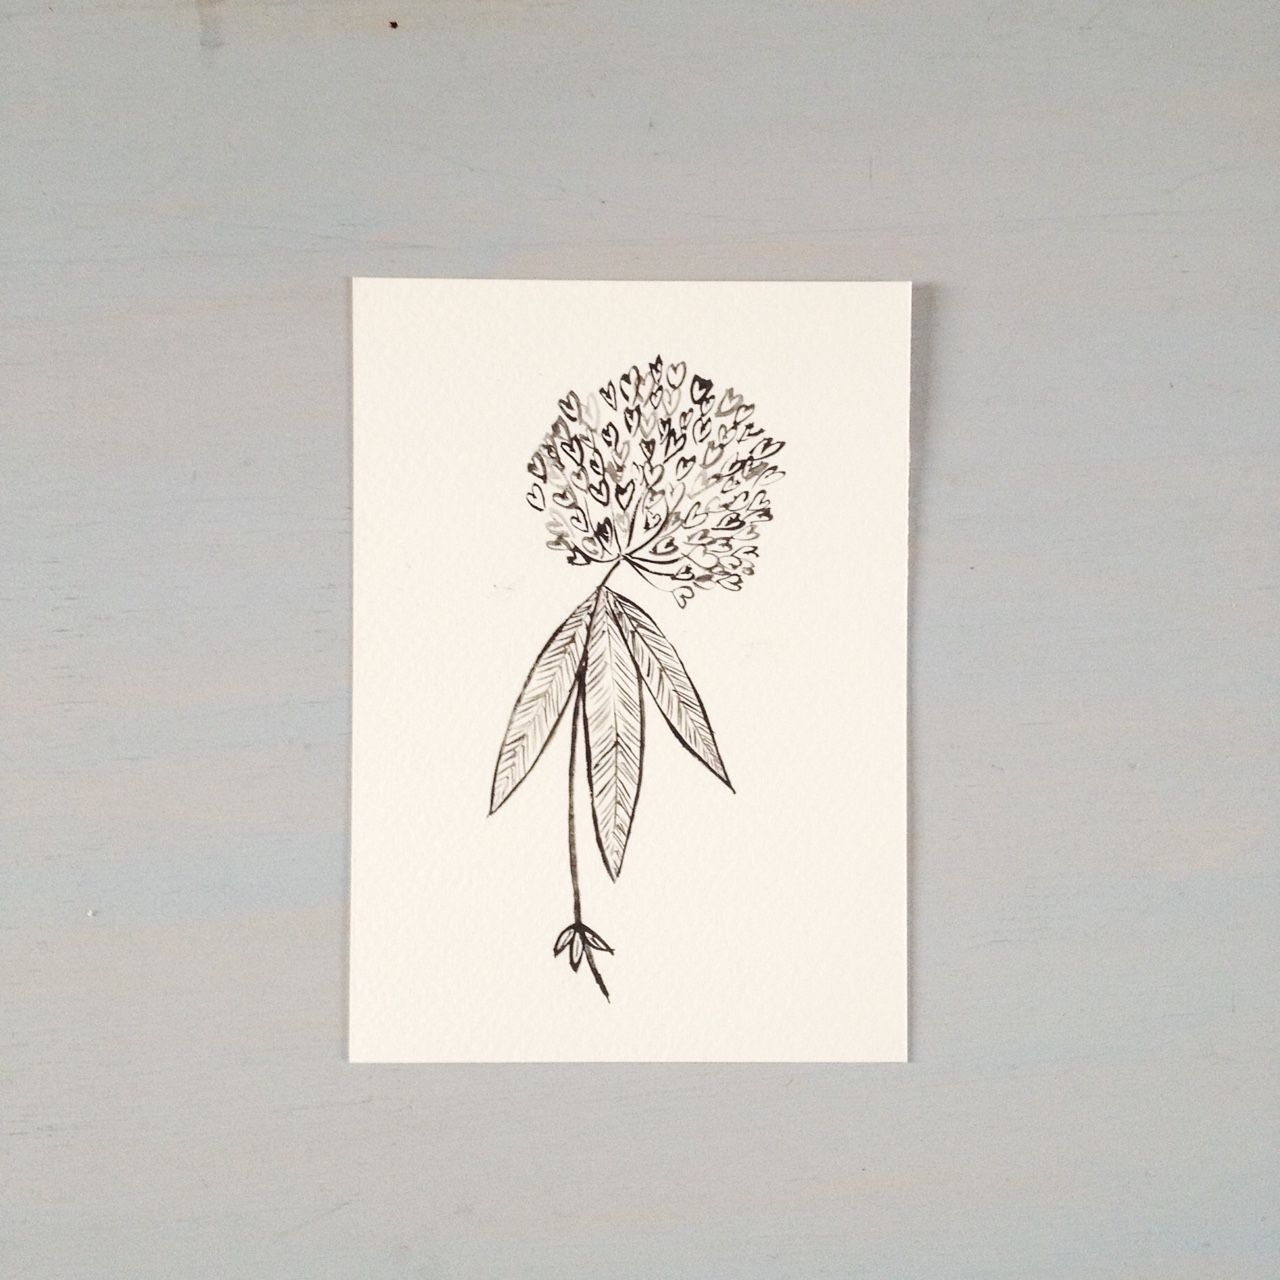 Trifolium medium done in black gouache on a watercolour paper postcardsize A6 10.5x14.8 cm  (4.1inches x 5.8inches)on a watercolour paper postcard (300 gsm acid free)day 34 in the project...